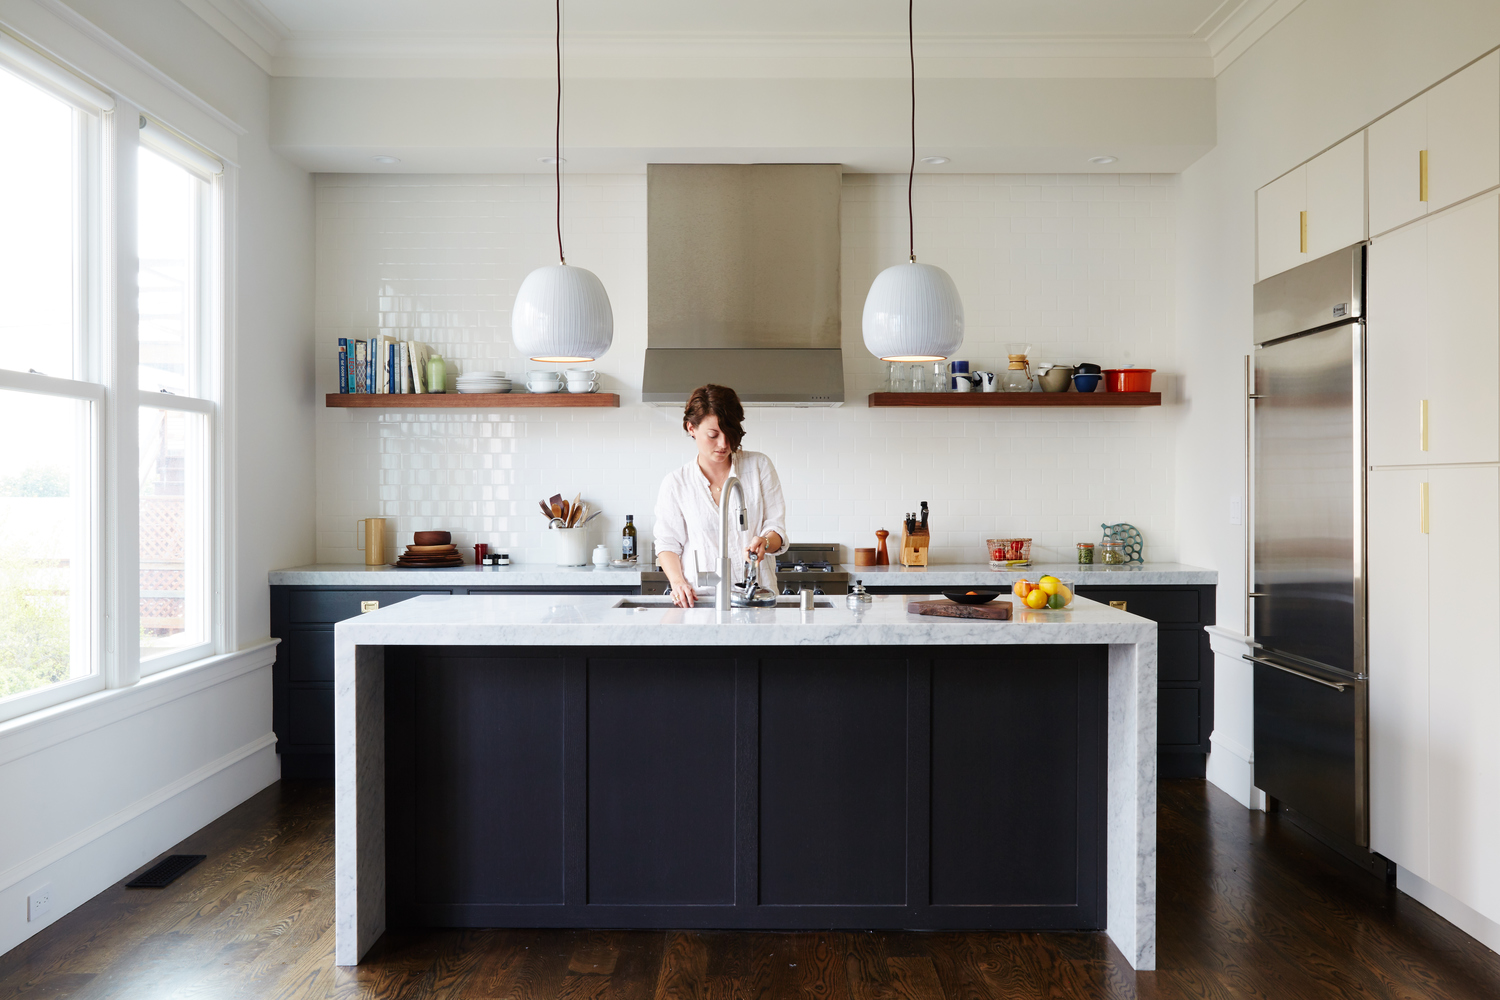 studio muir san francisco design firm modern kitchen design by studio muir